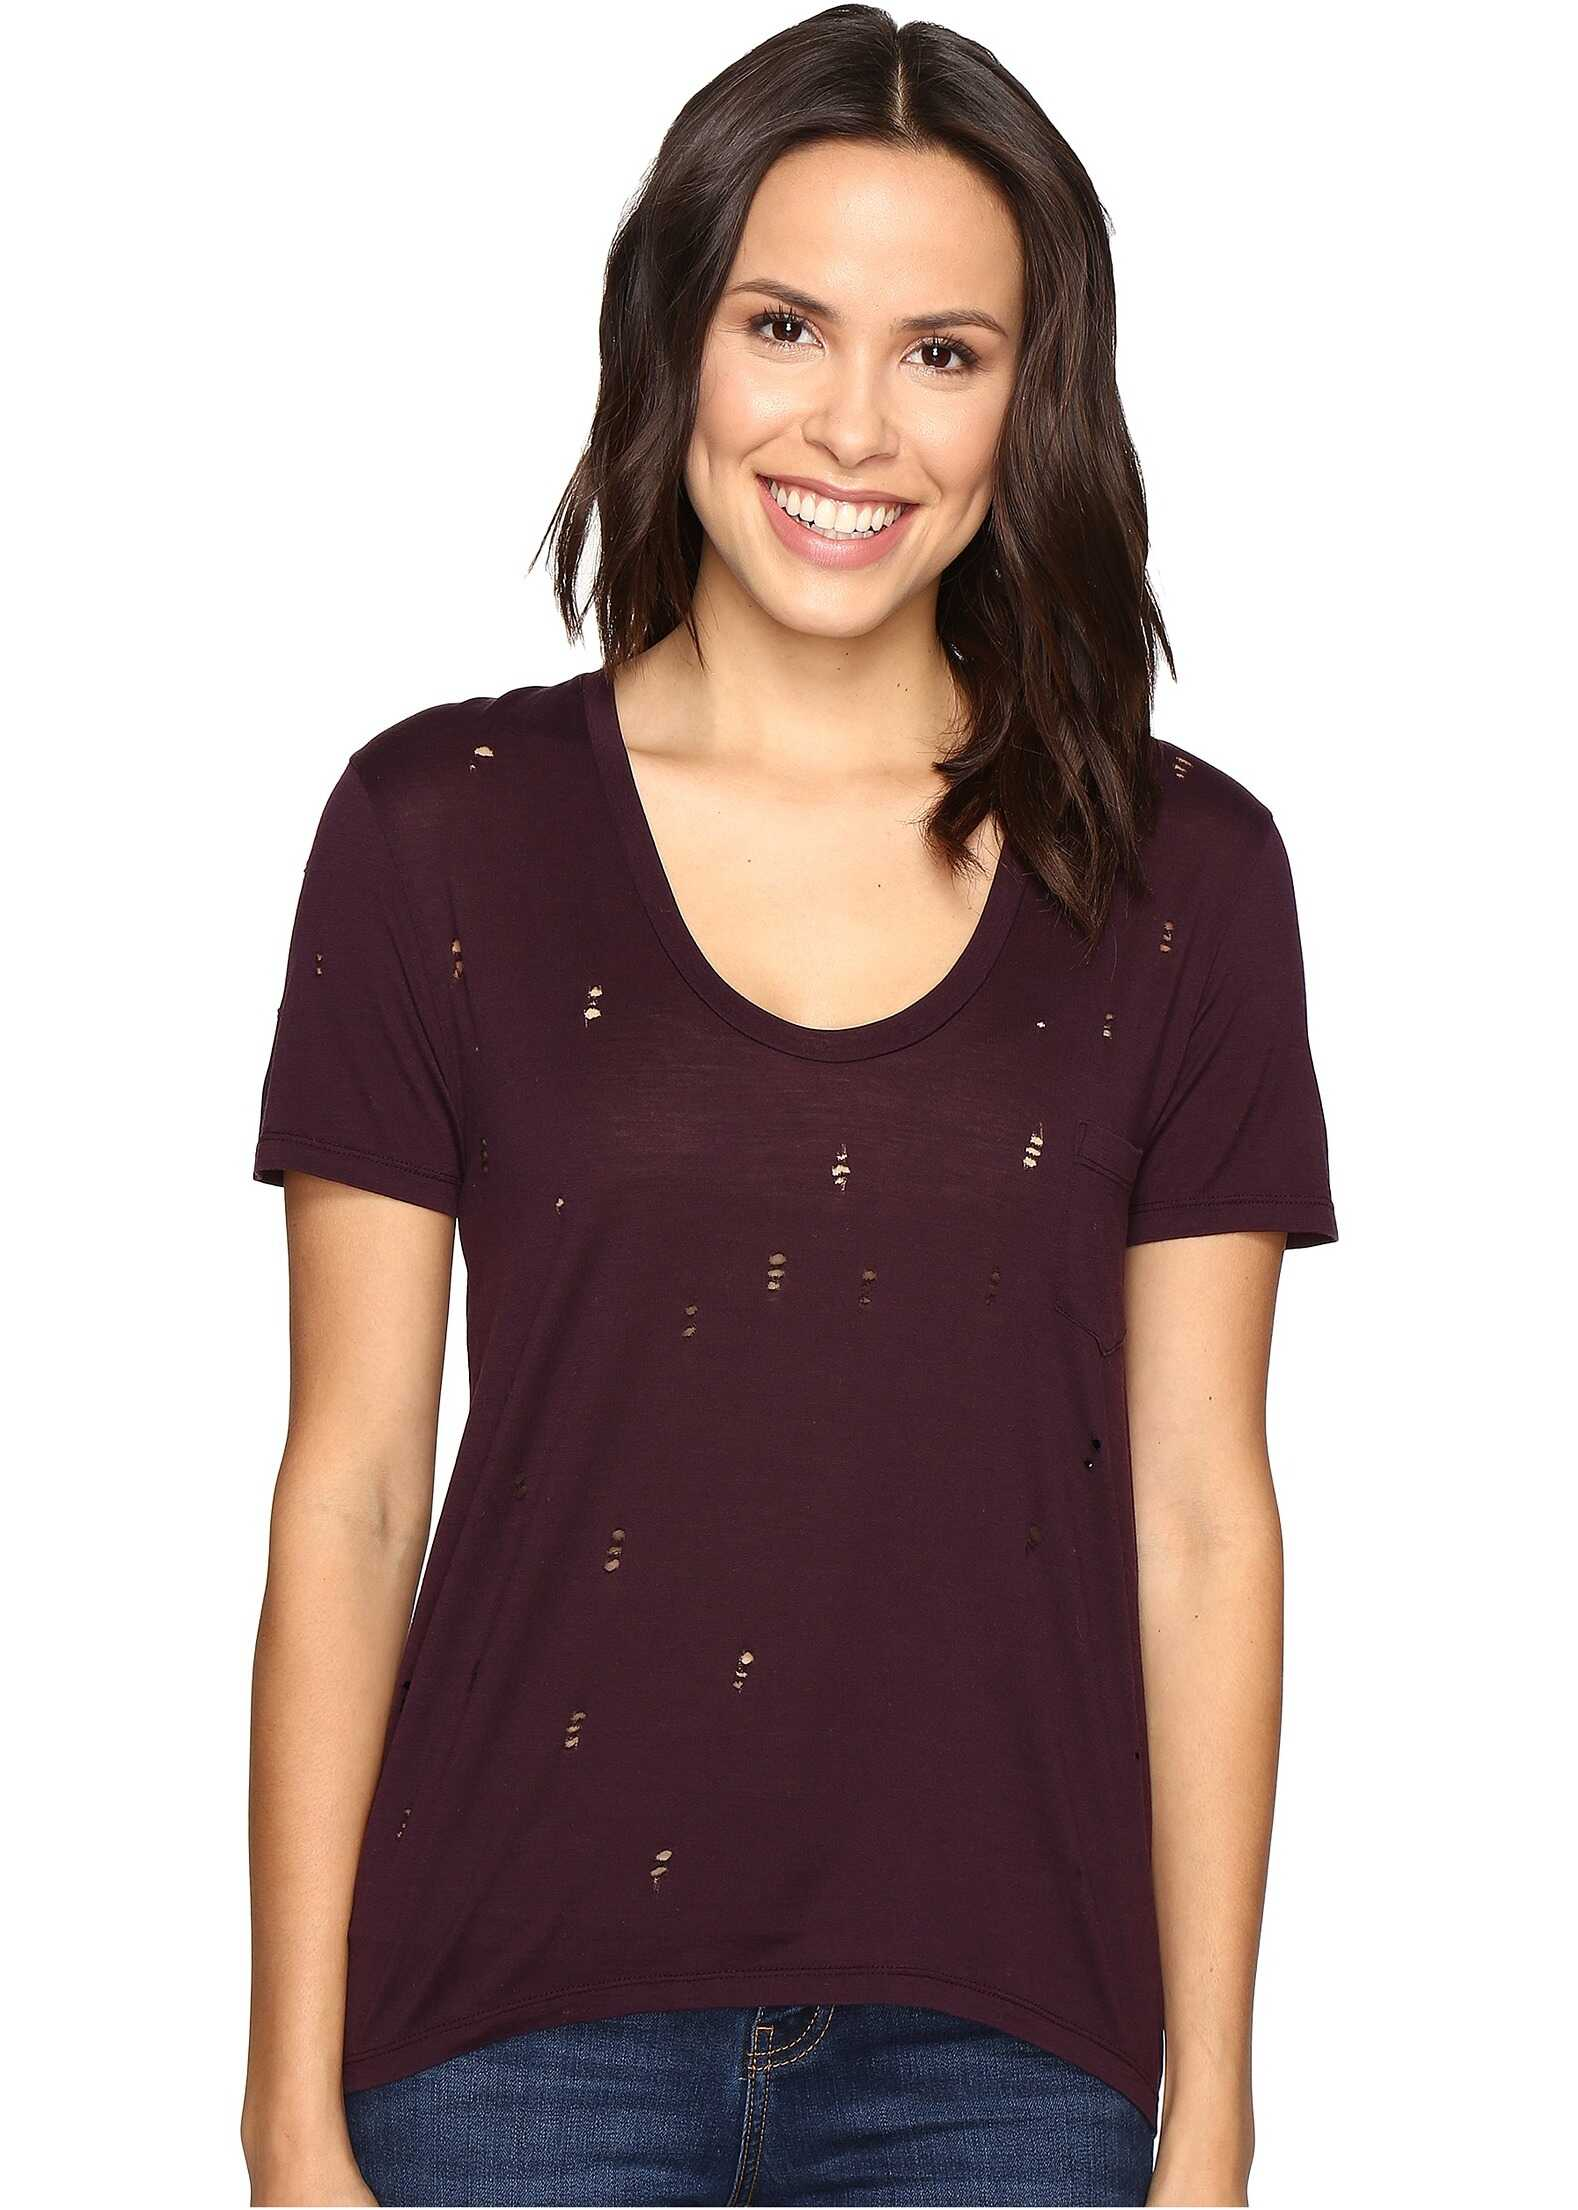 Joes Jeans Gilles Tee Deep Orchid